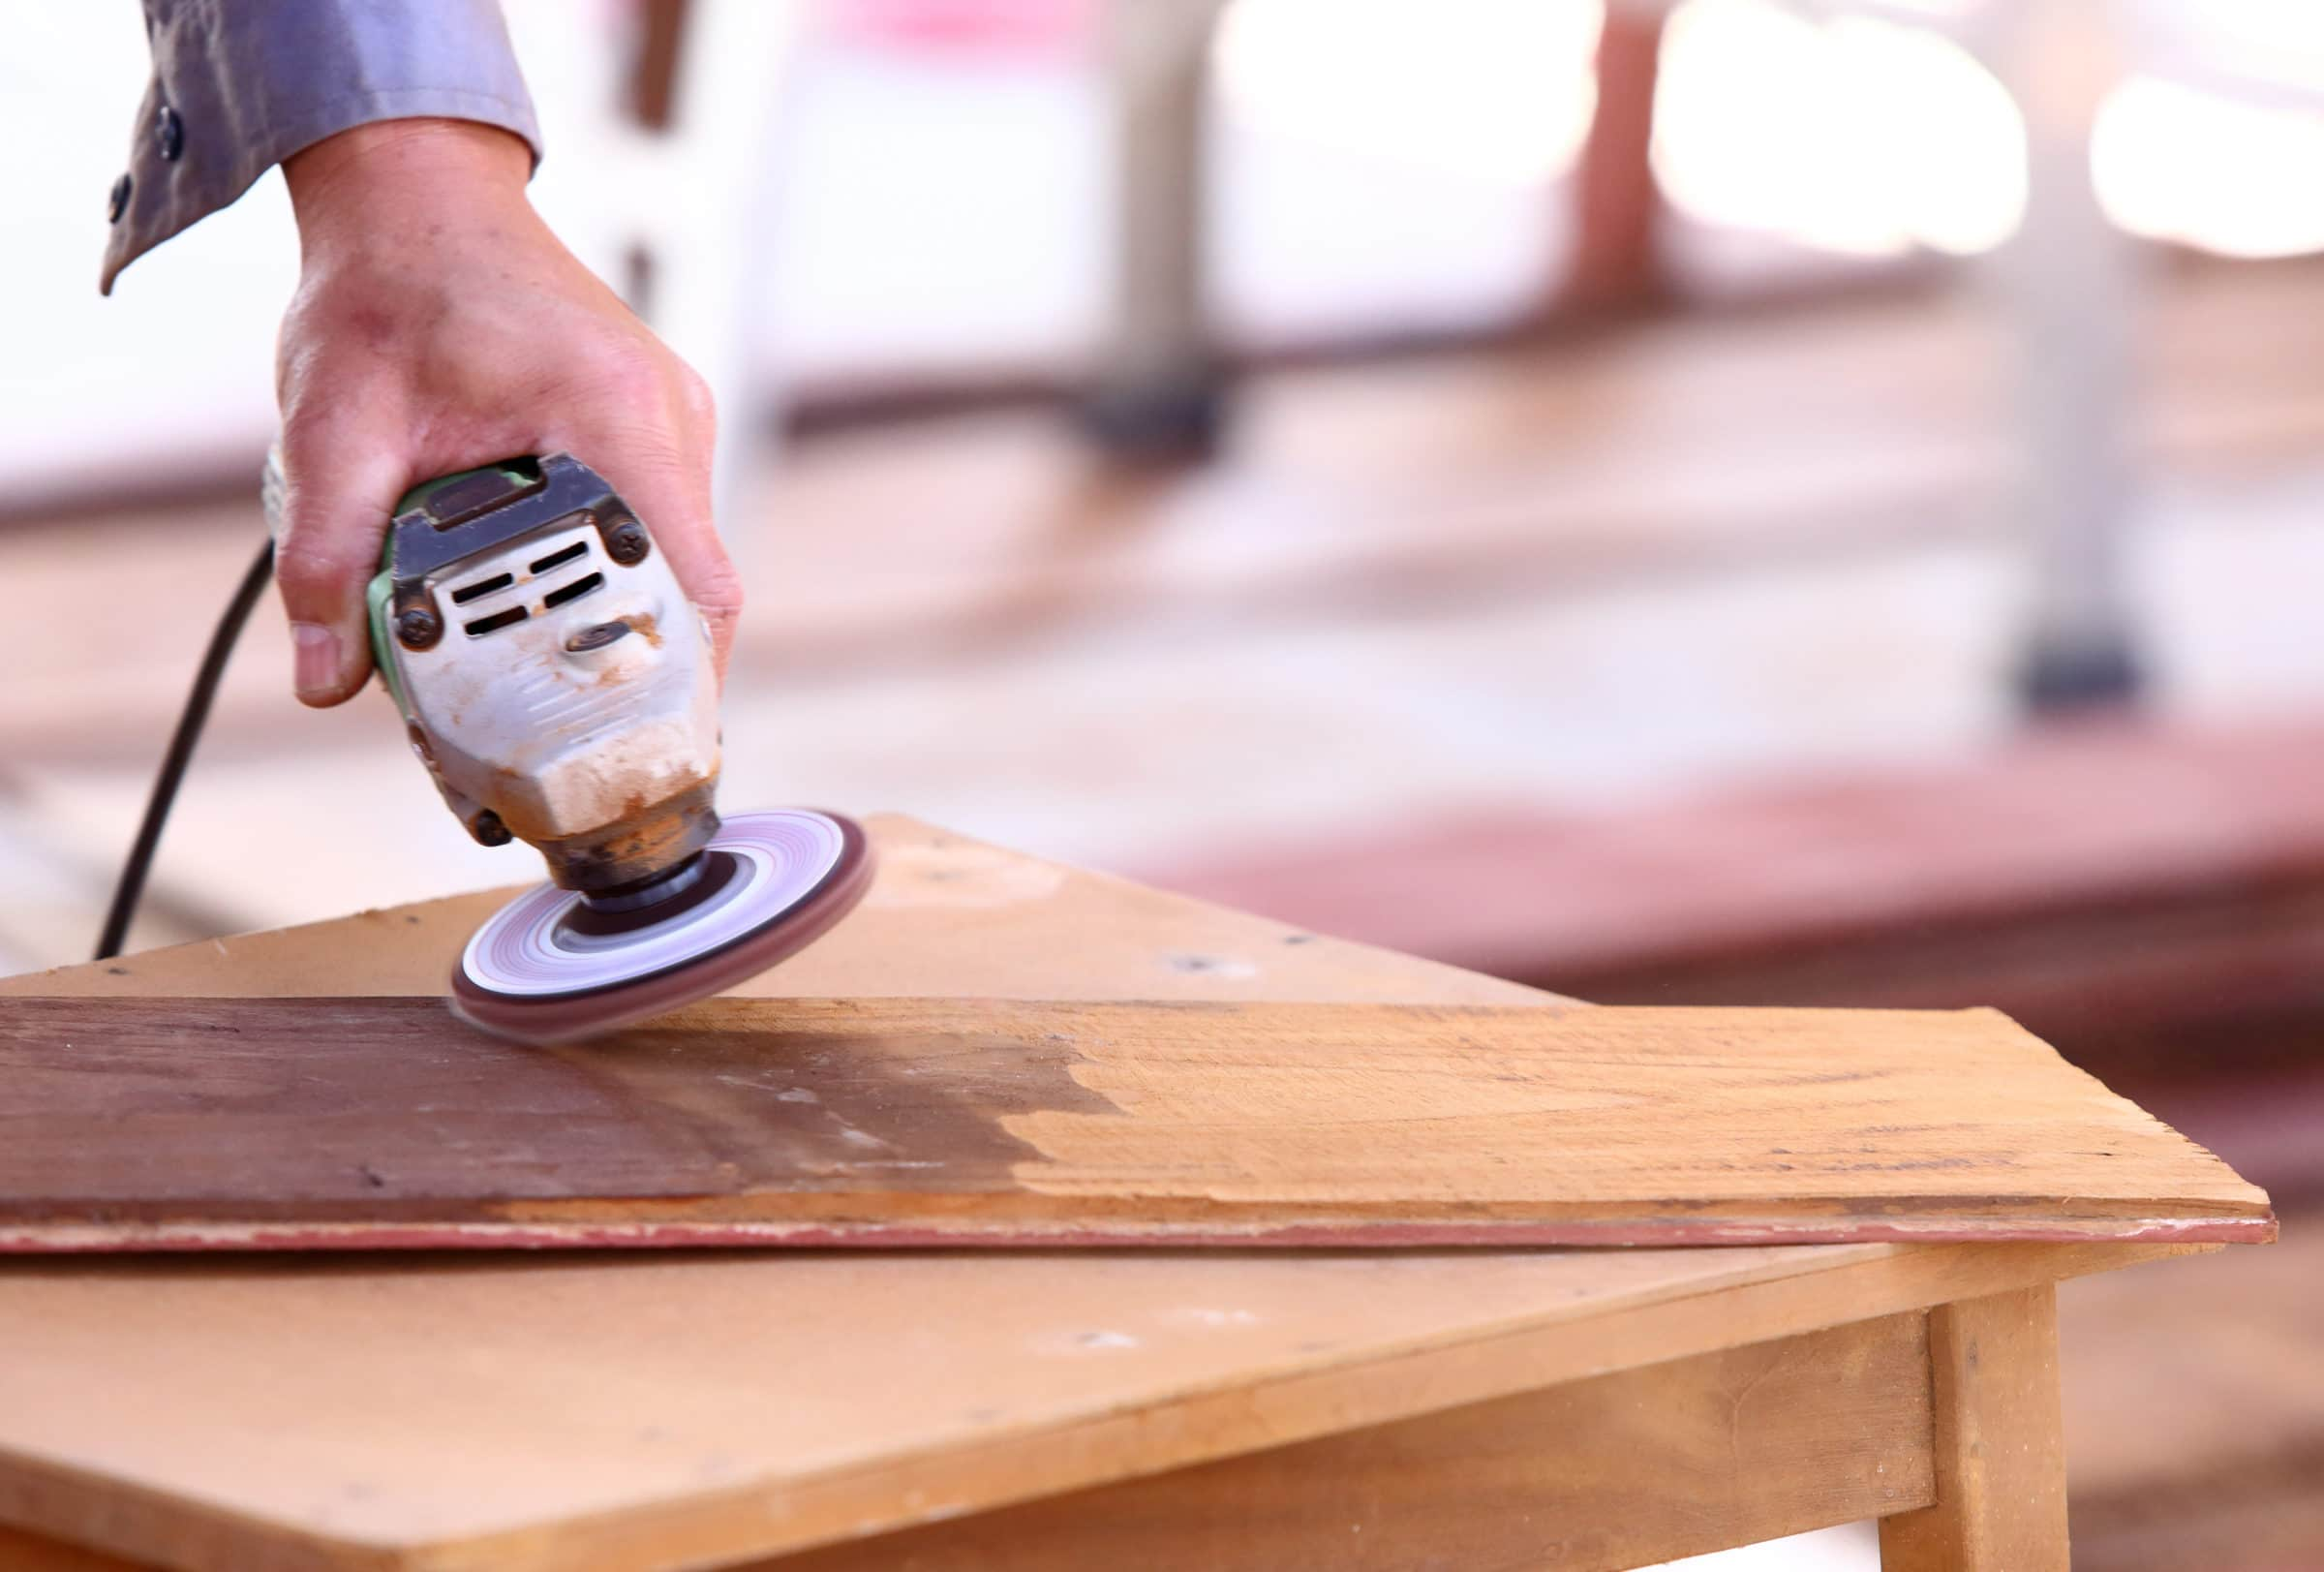 Electric sander being used to remove paint from wood